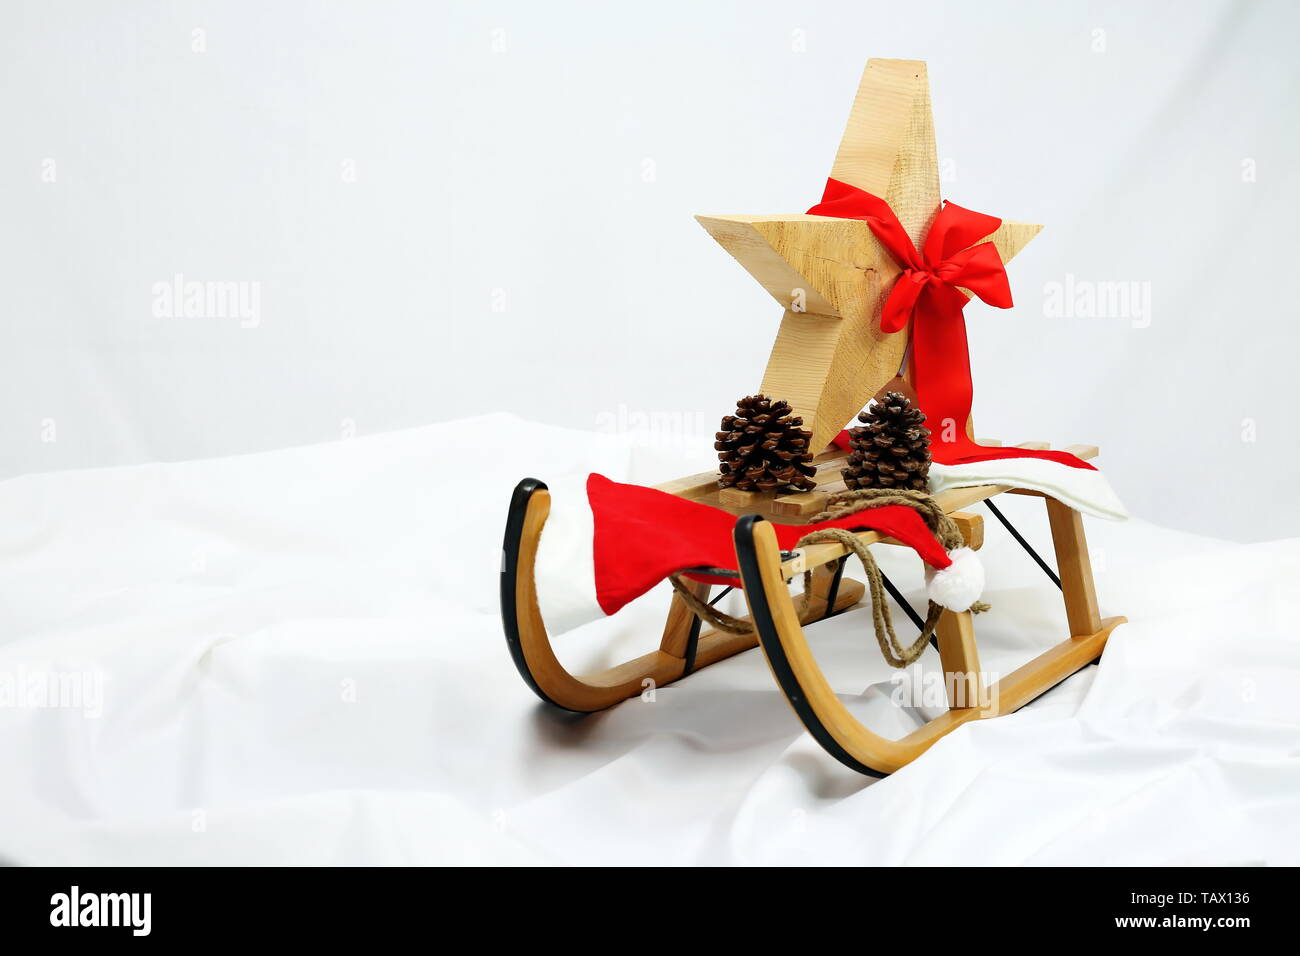 Christmas star decoration with red bow on a sledge Stock Photo